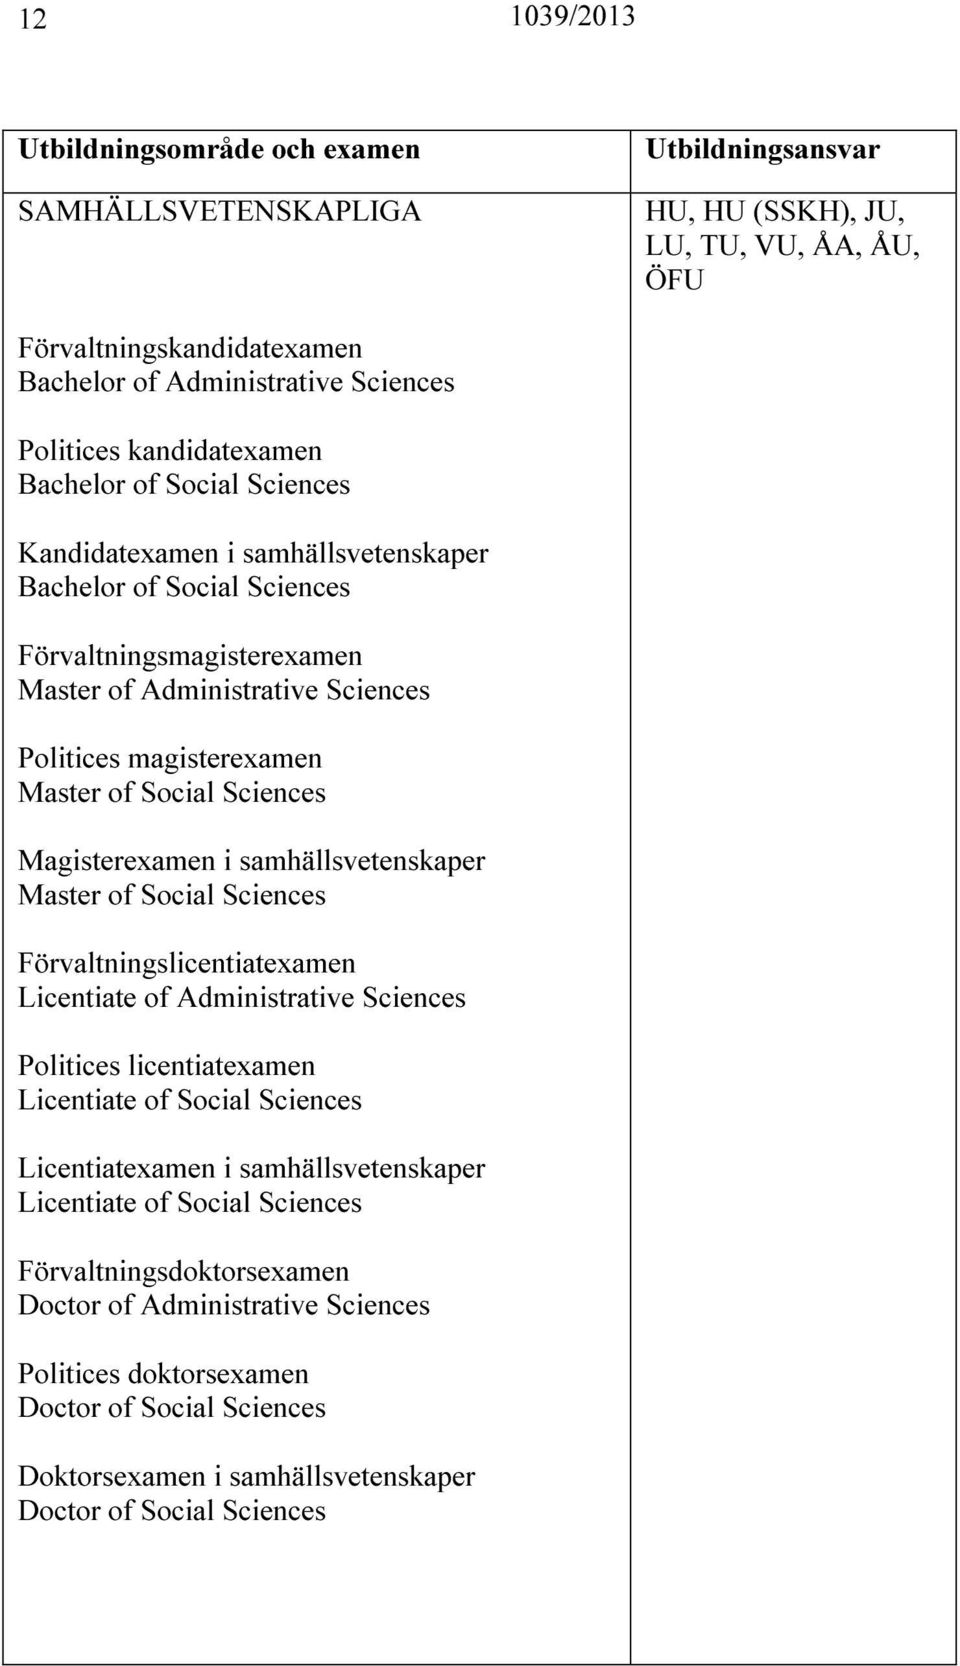 samhällsvetenskaper Master of Social Sciences Förvaltningslicentiatexamen Licentiate of Administrative Sciences Politices licentiatexamen Licentiate of Social Sciences Licentiatexamen i